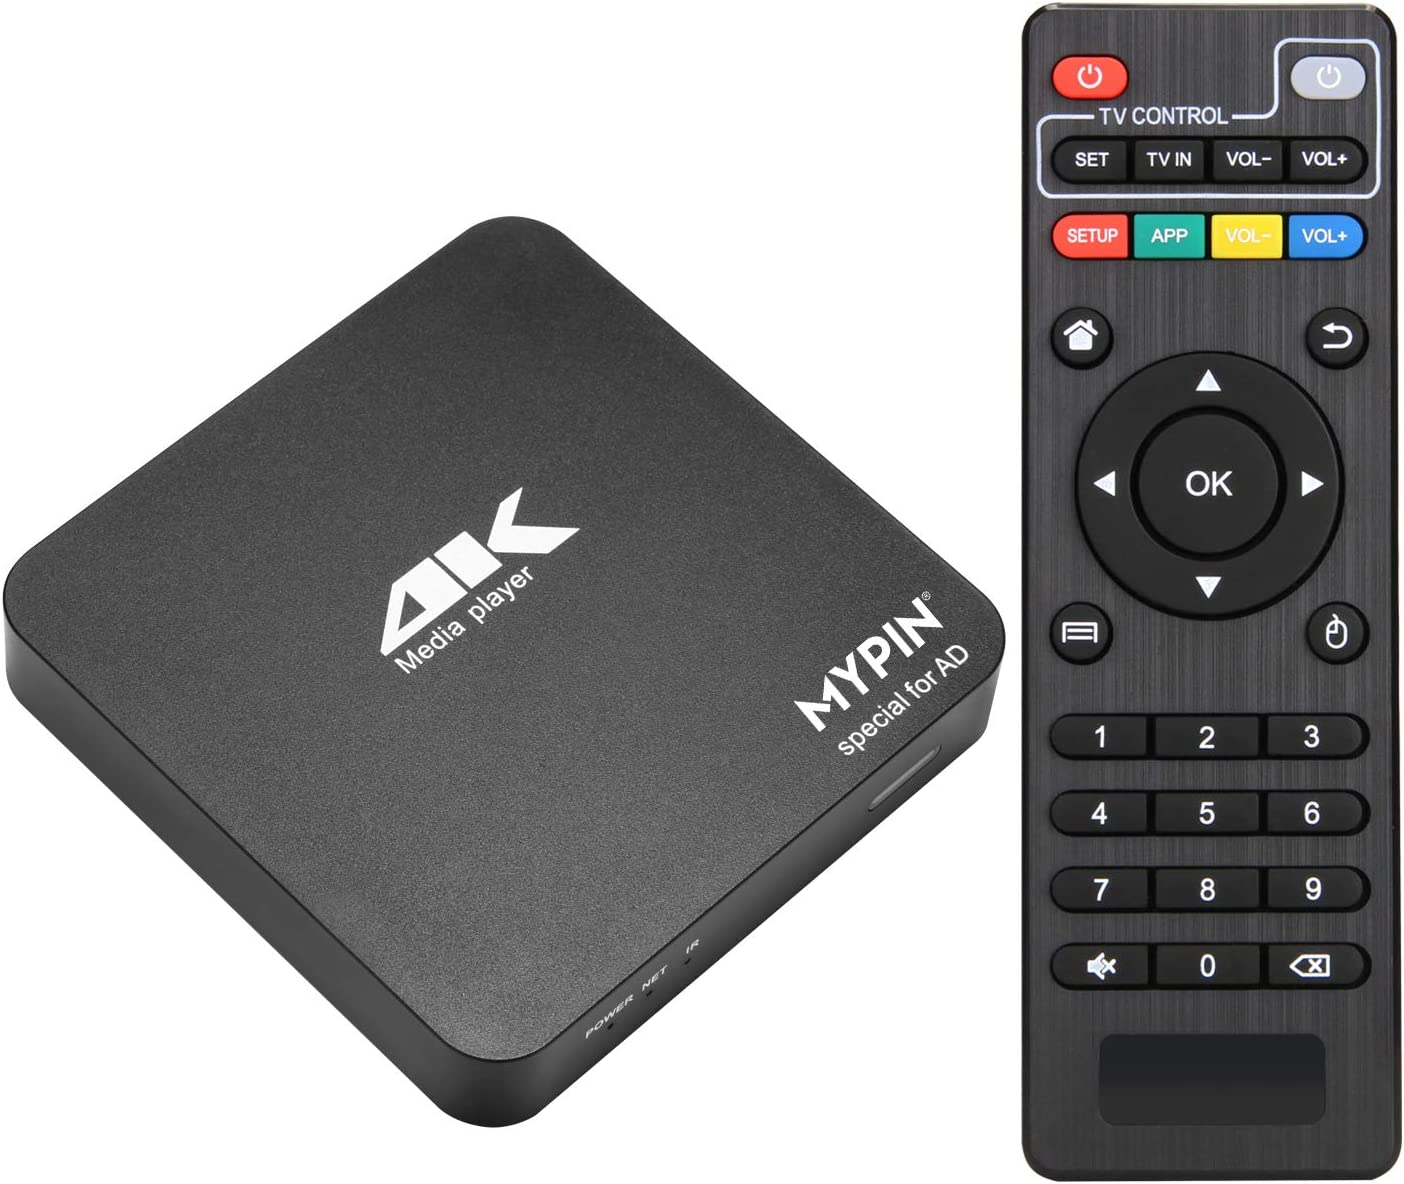 4K@60HZ MP4 Media Player Support 8TB HDD/ 64G USB Drive/SD Card with HDMI / AV Out for HDTV /PPT MKV AVI MP4 H.265- Support Advertising Logo / Subtitles/ HDR and Remote Control